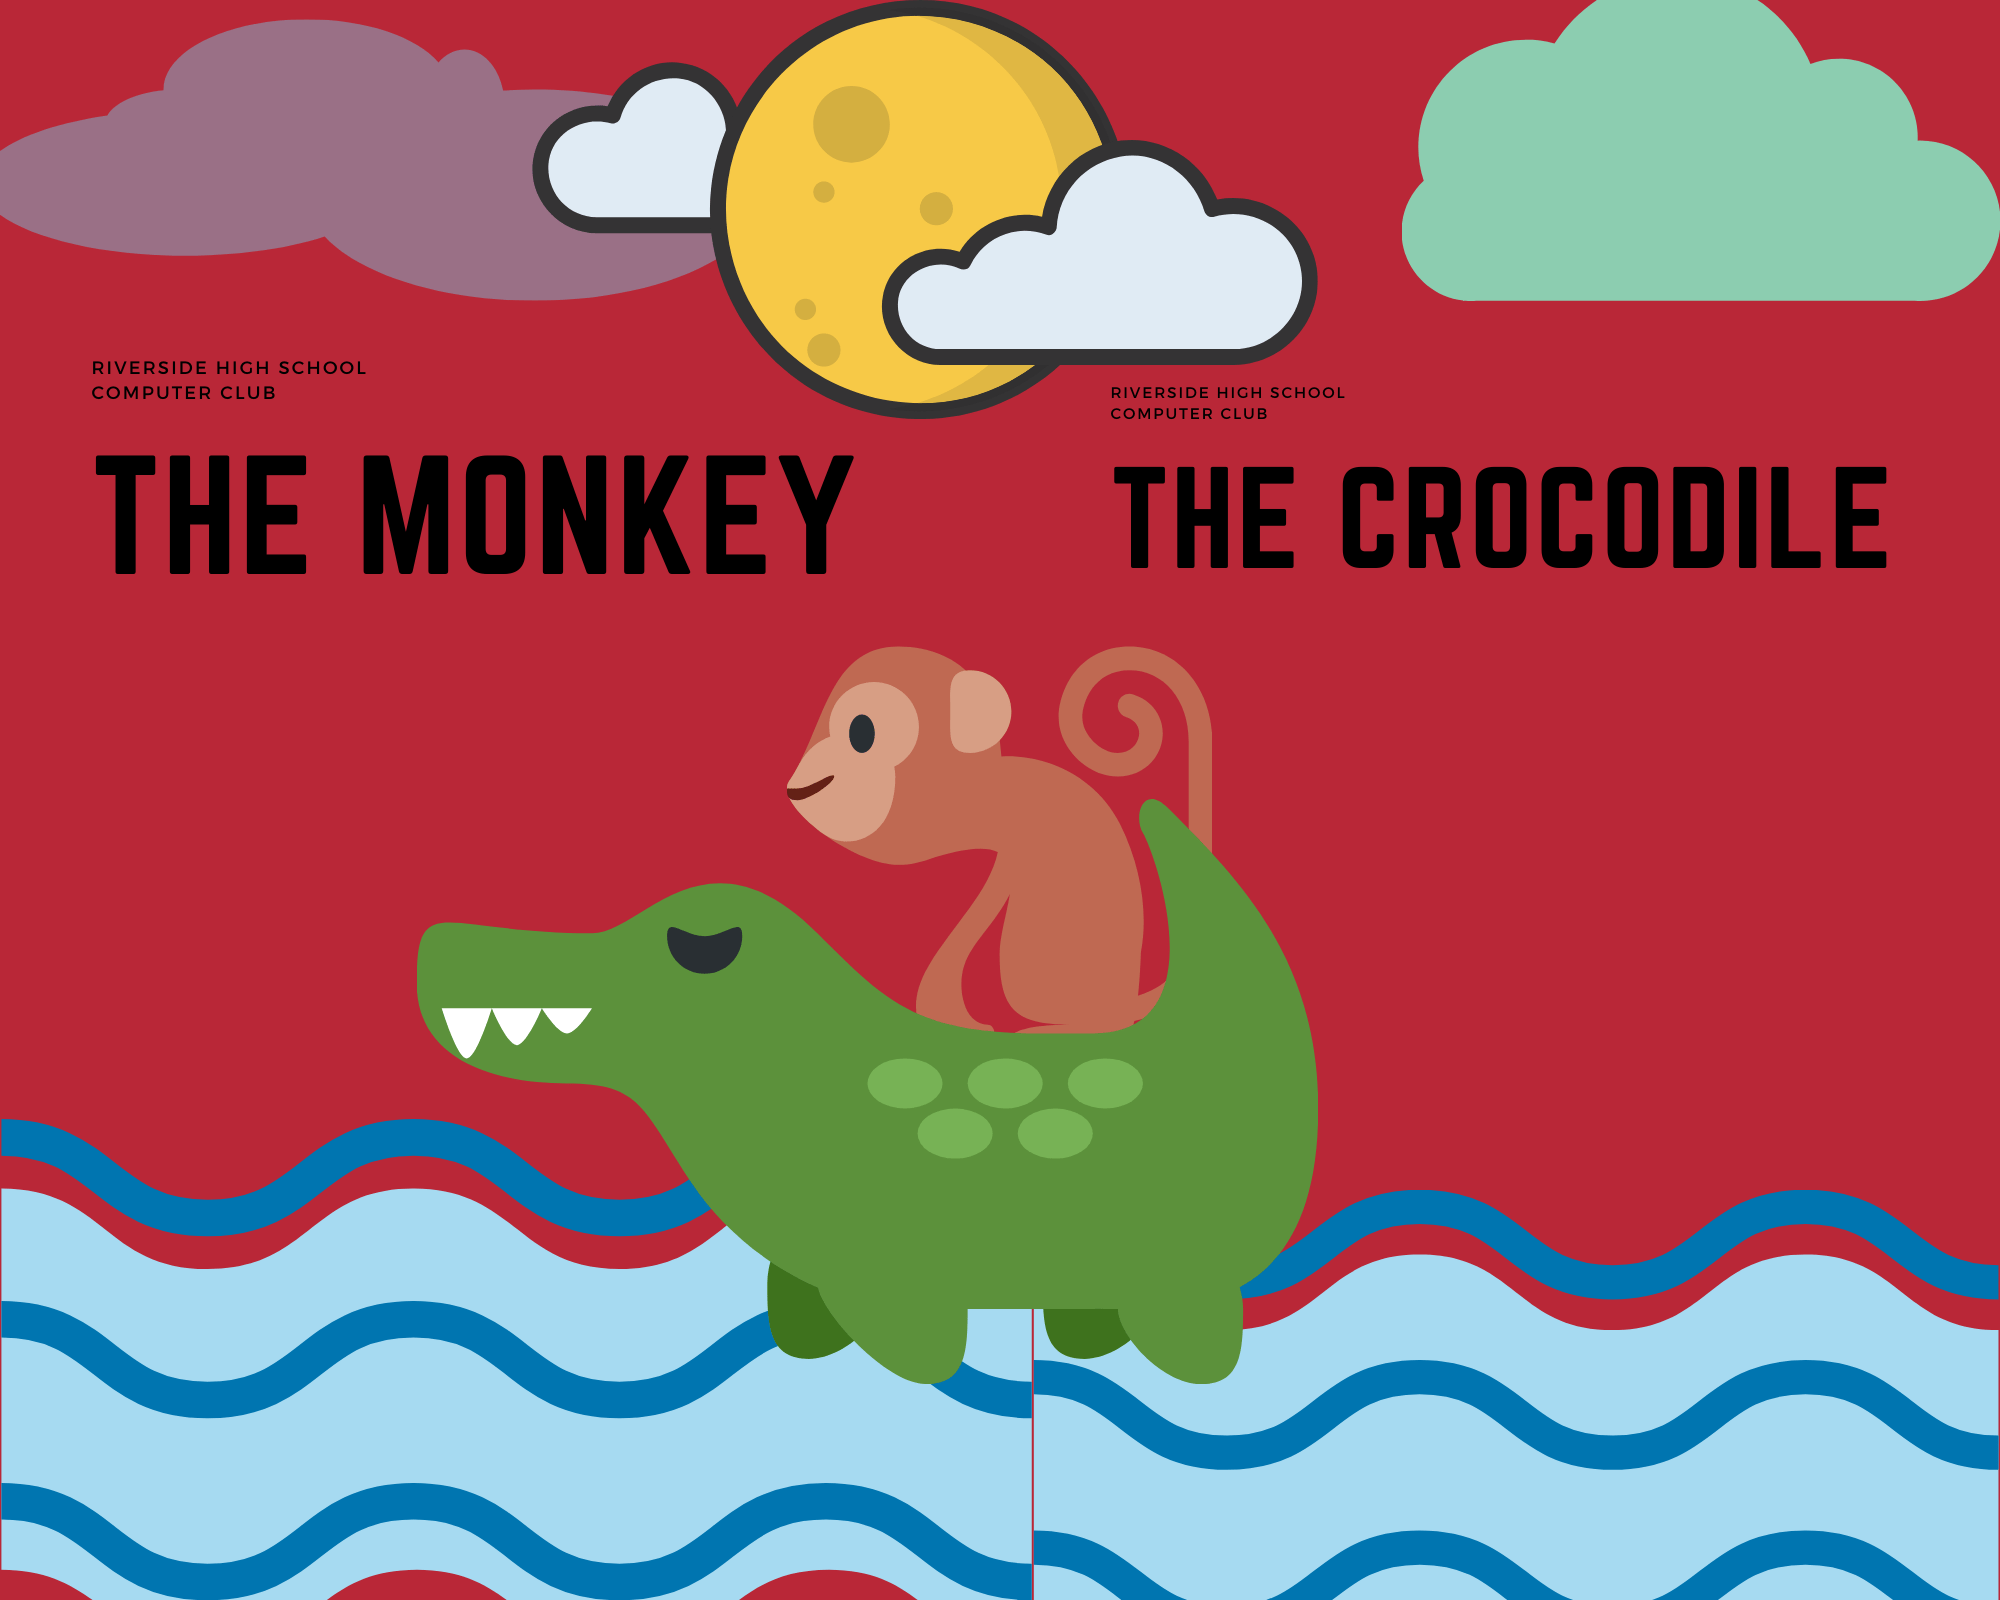 THE CROCODILE AND THE MONKEY